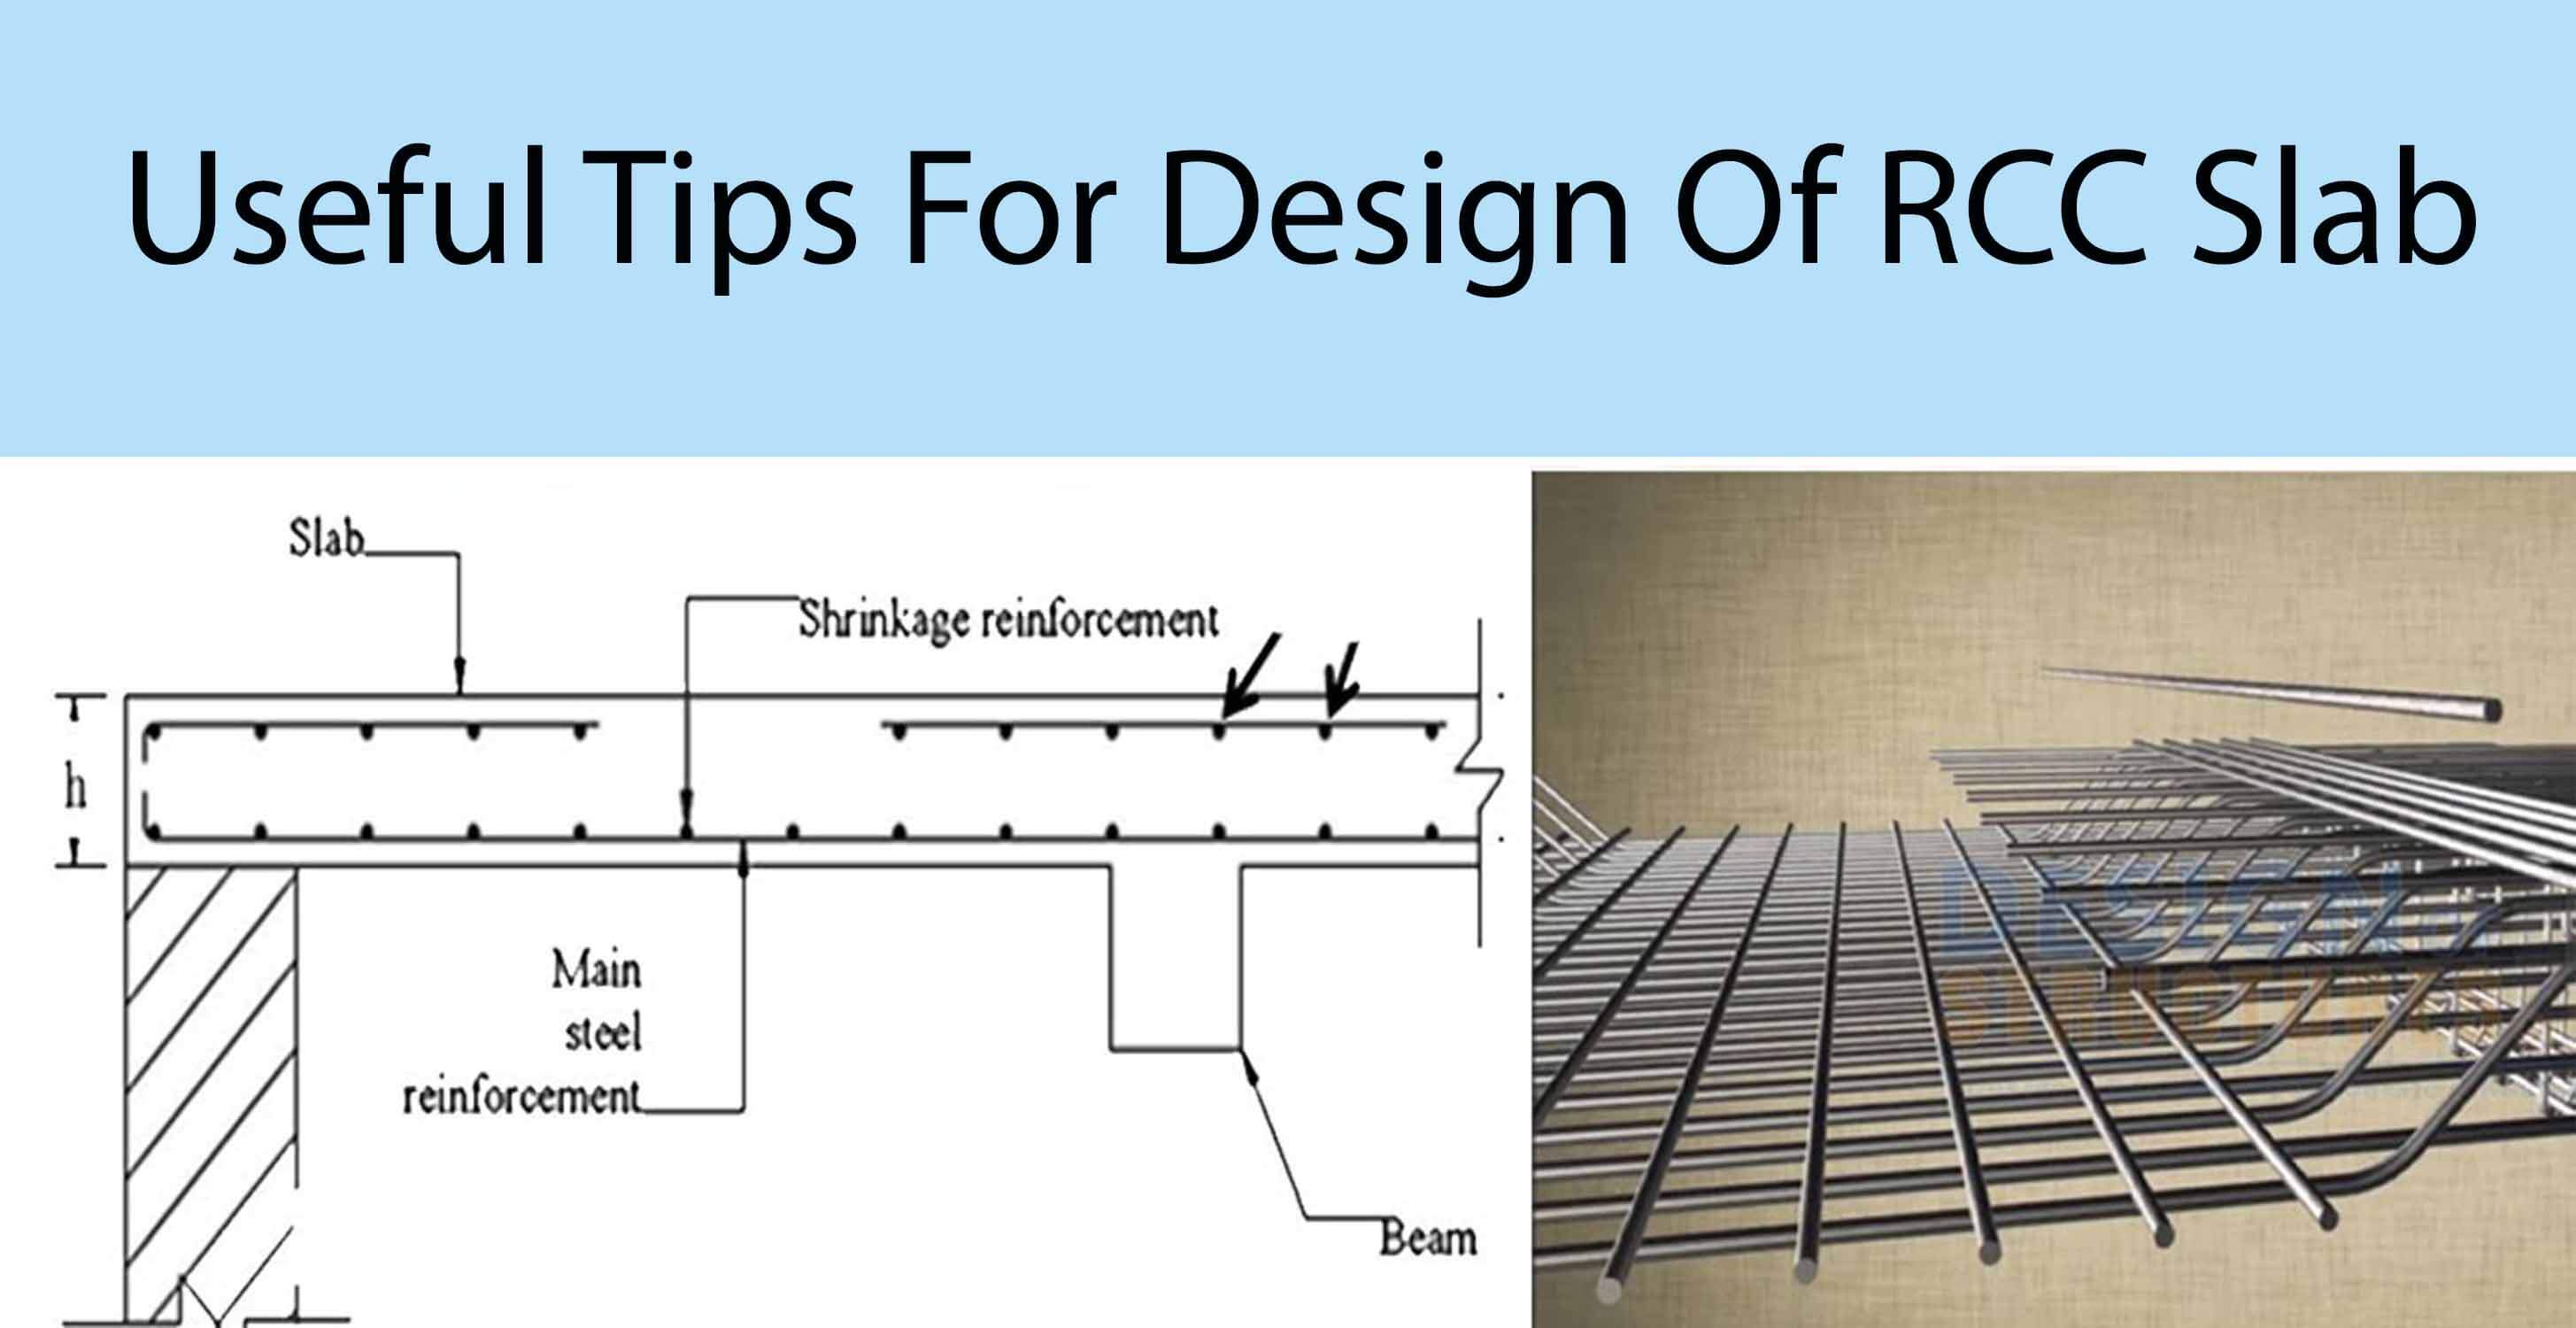 Useful Tips For Design Of RCC Slab - Engineering Discoveries